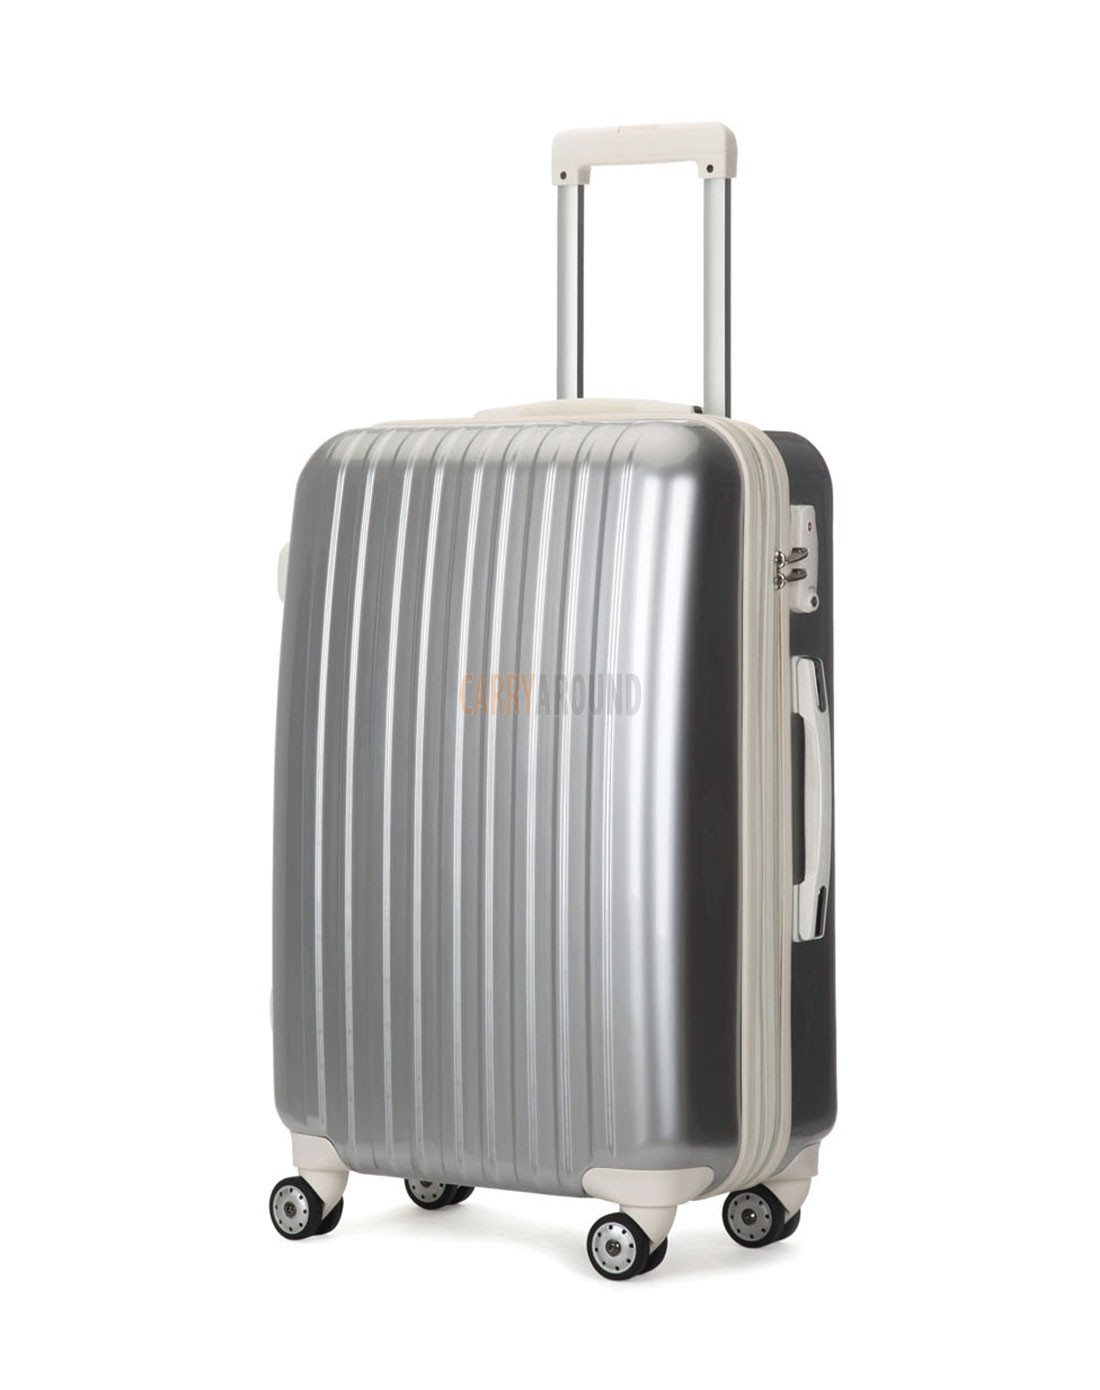 """AIRCROSS 2PC Set Luggage A55 Grey Hard Case Expandable Trolley Luggage - 24""""26"""""""